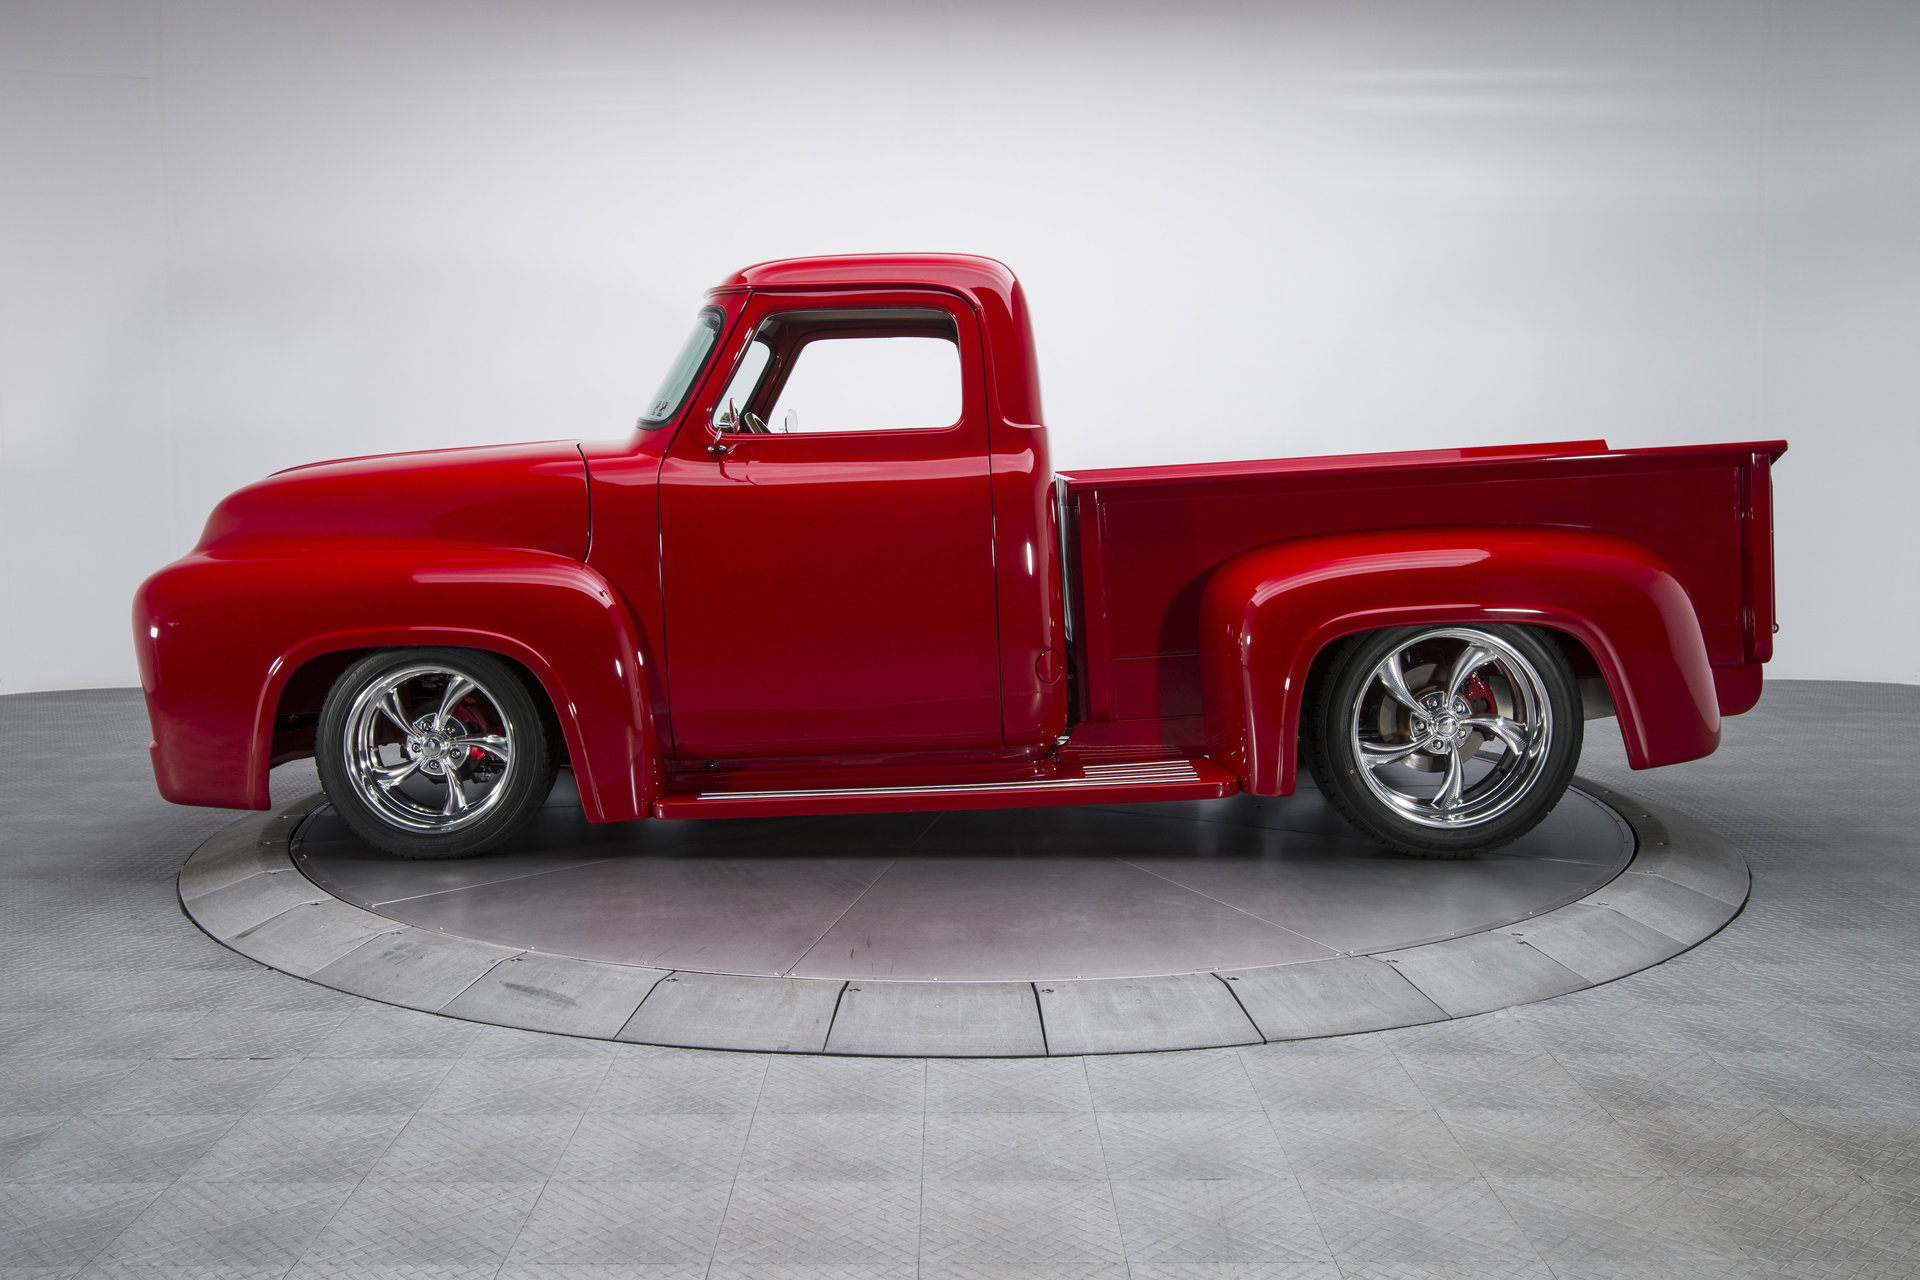 136009 1953 Ford F100 Rk Motors Classic And Performance Cars For Sale 1969 Short Bed